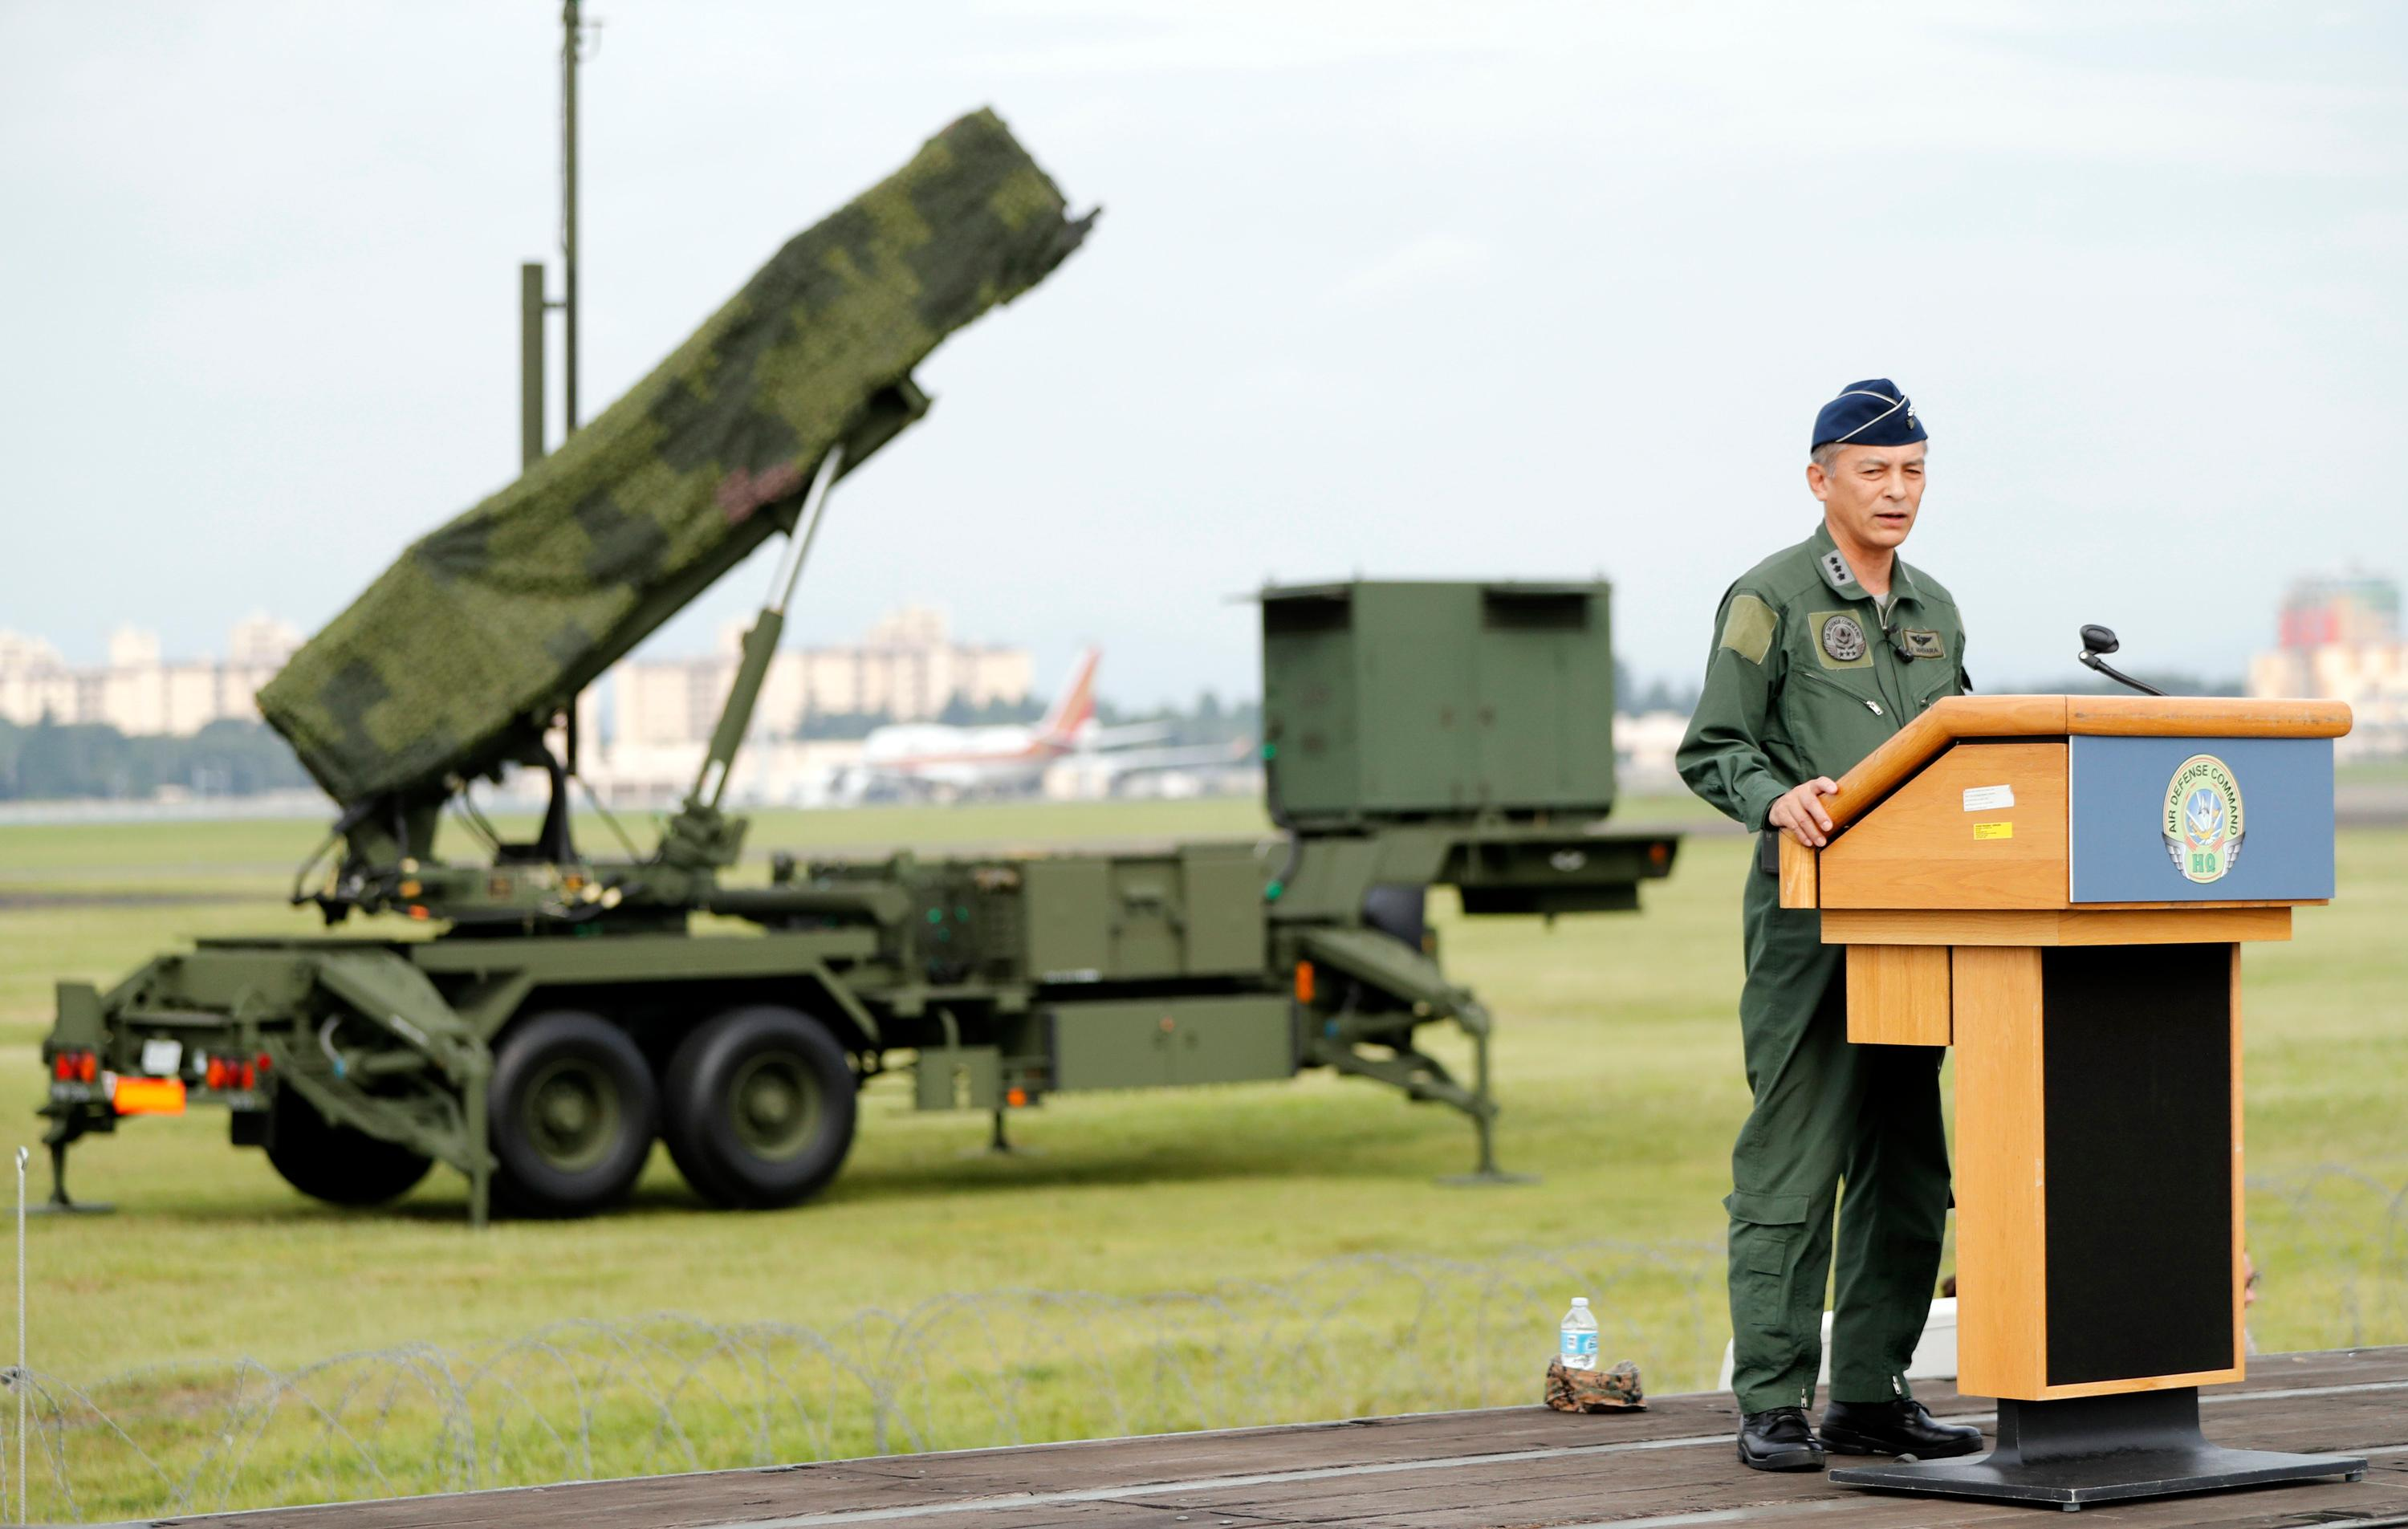 Lt. Gen. Hiroaki Maehara, the commander of the Air Self-Defense Forces, delivers a speech in front of Japanese Air Self Defense Force (JASDF) demonstrating the training to utilize the PAC-3 surface to air interceptors at the U.S. Yokota Air Base in Fussa, on the outskirts of Tokyo Tuesday, Aug. 29, 2017. (AP Photo/Eugene Hoshiko)